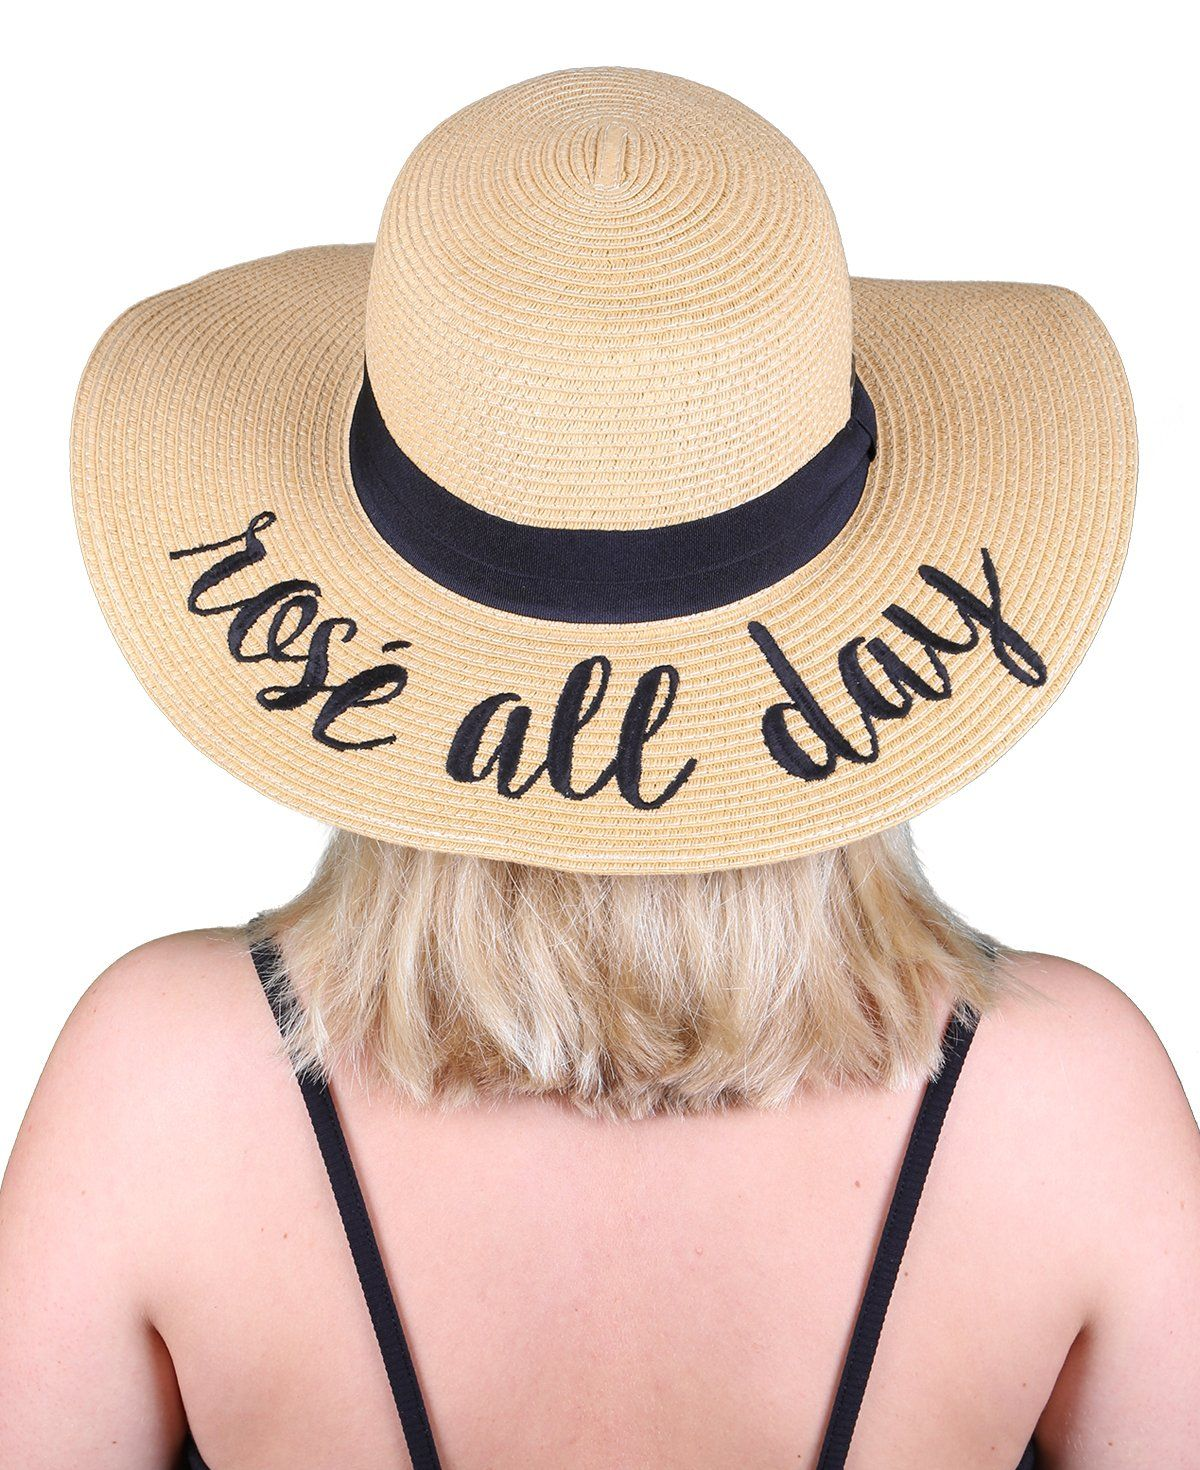 2bfc0b94 C.C Embroidered Sun Hat - Rosé All Day   Rose all day   Hats, Sun ...